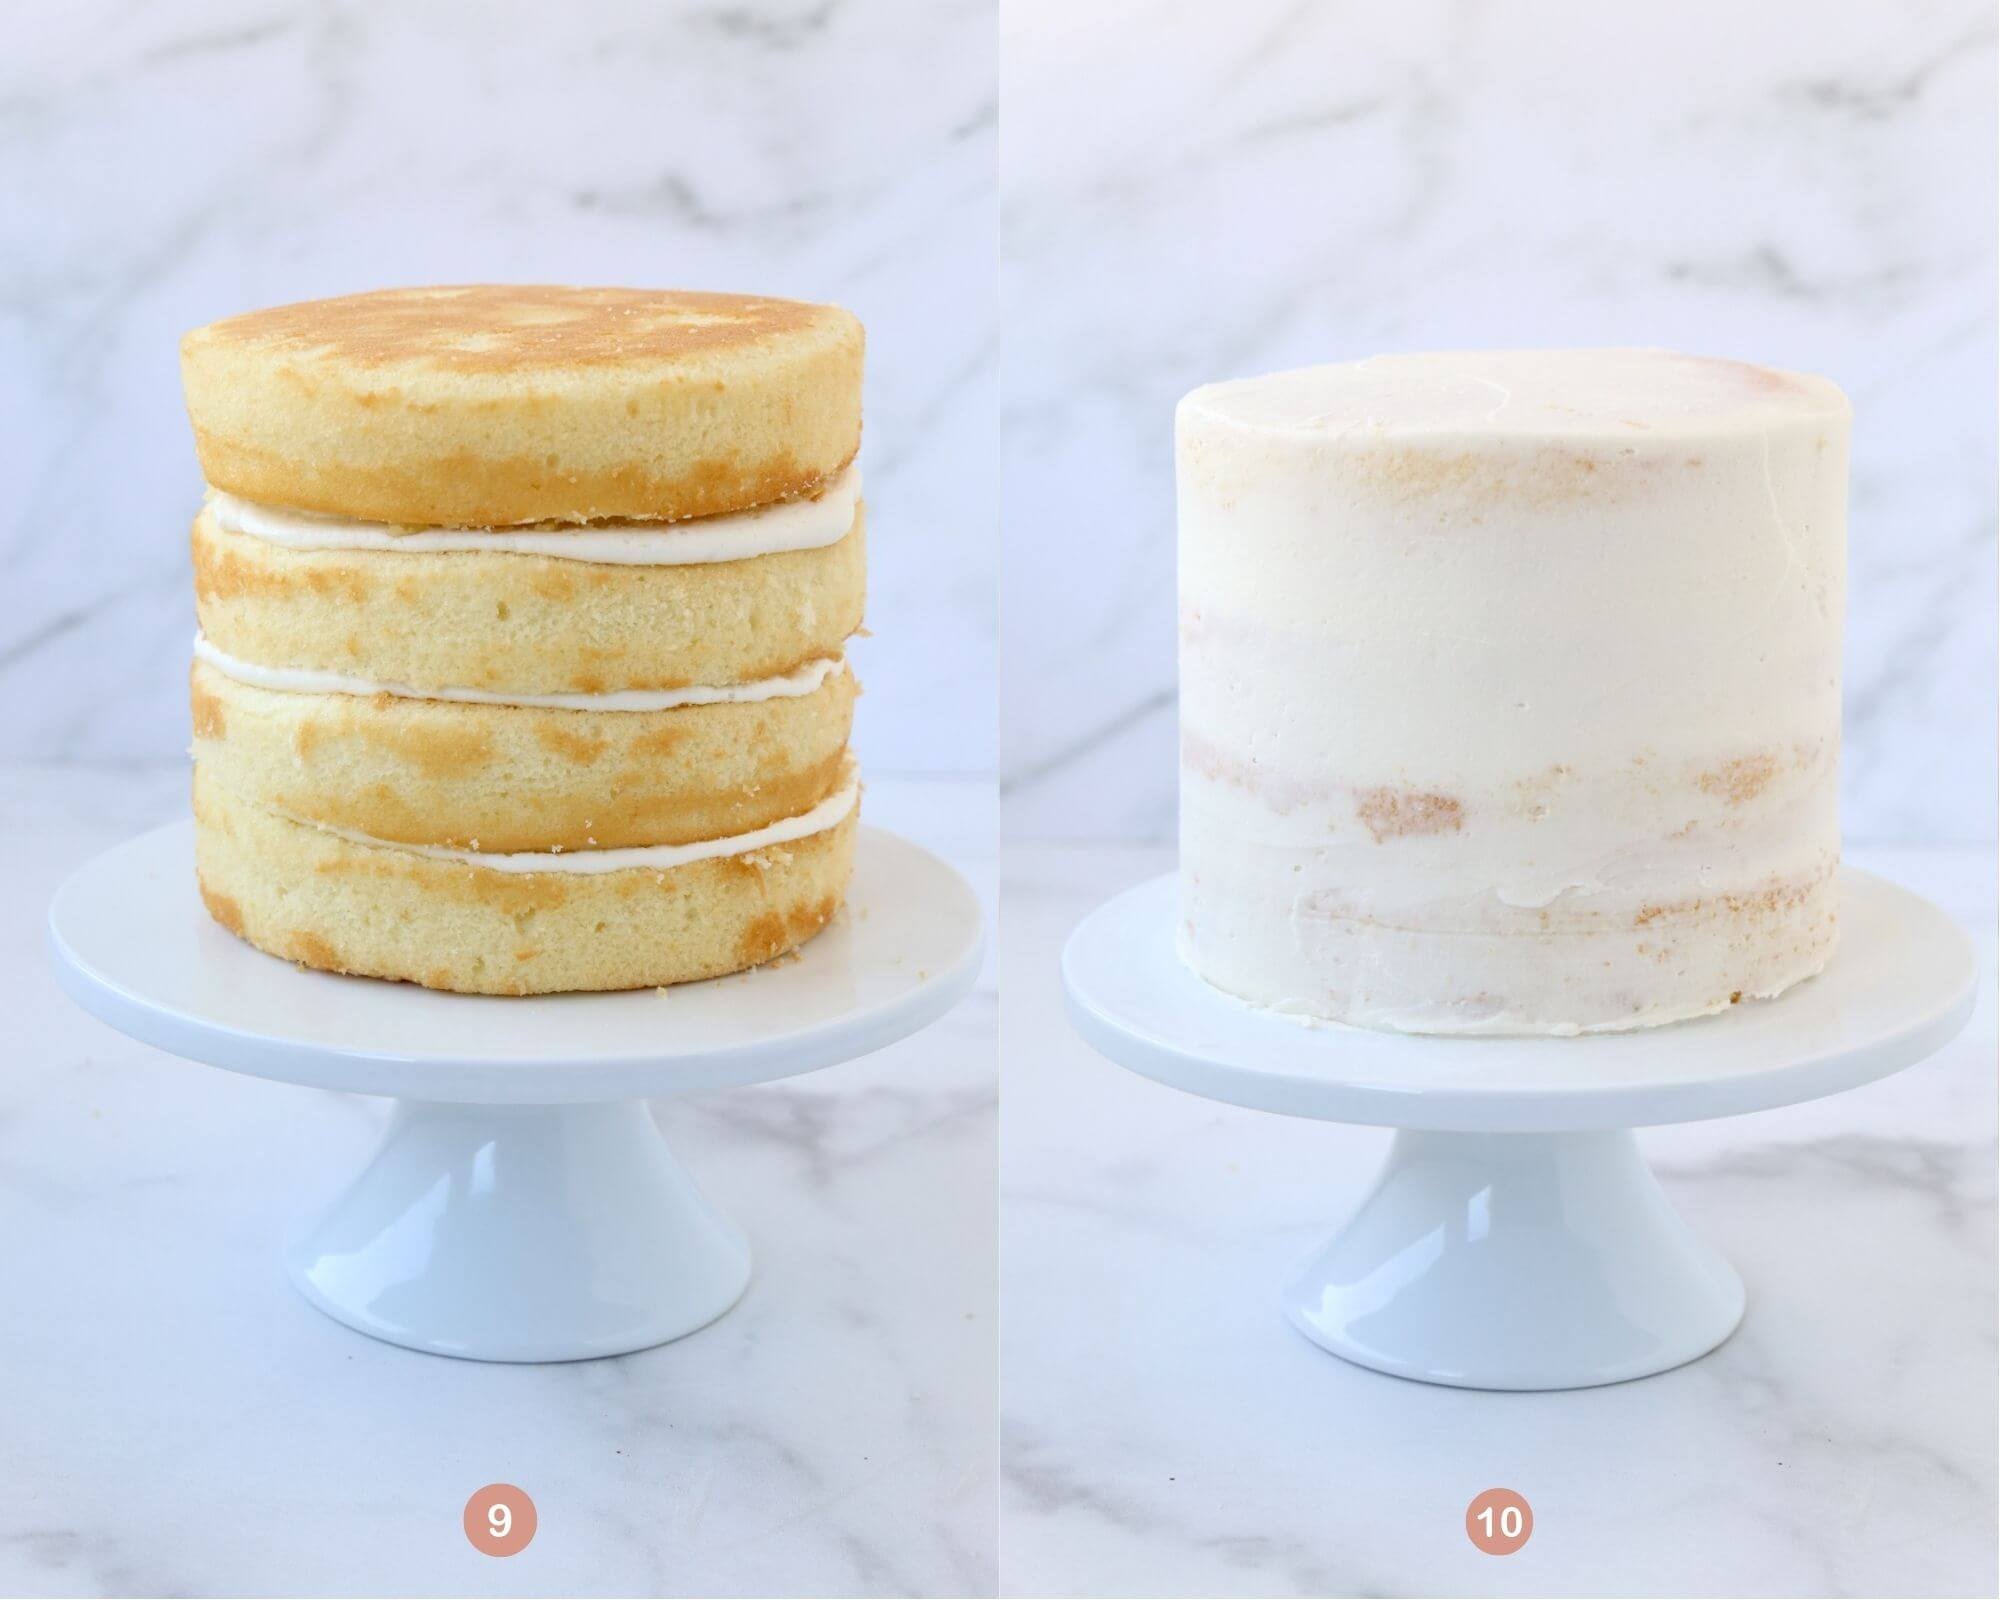 one photo of a four layer cake with not frosting on the outside and another photo of a four layer cake with a crumb coating.